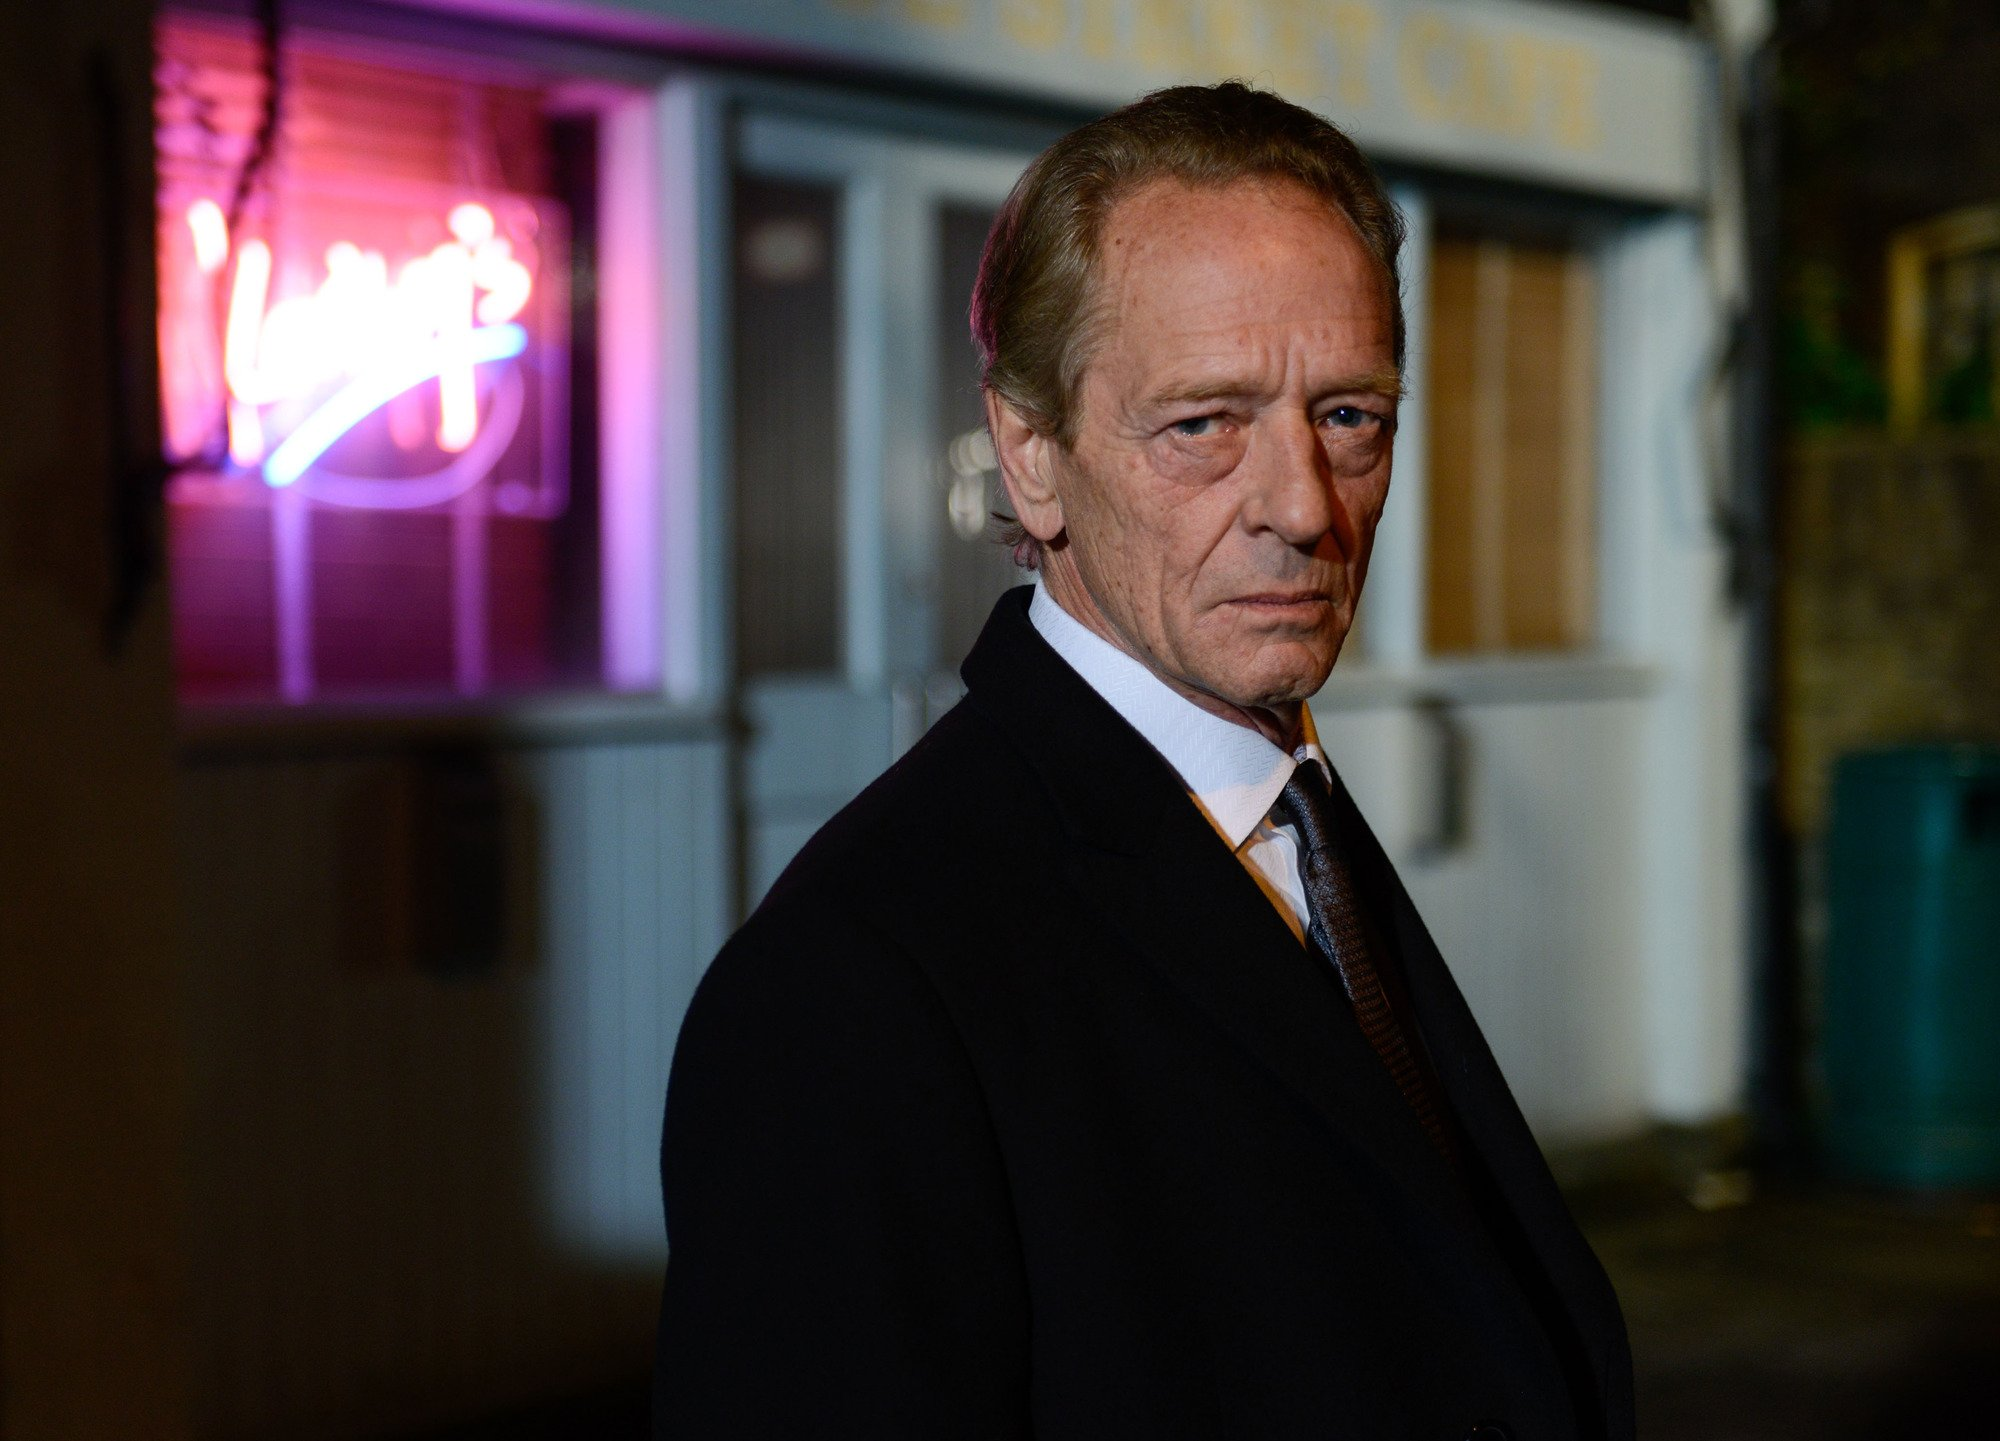 EastEnders SPOILER: Is Aunt Babe working with James Willmott-Brown?!